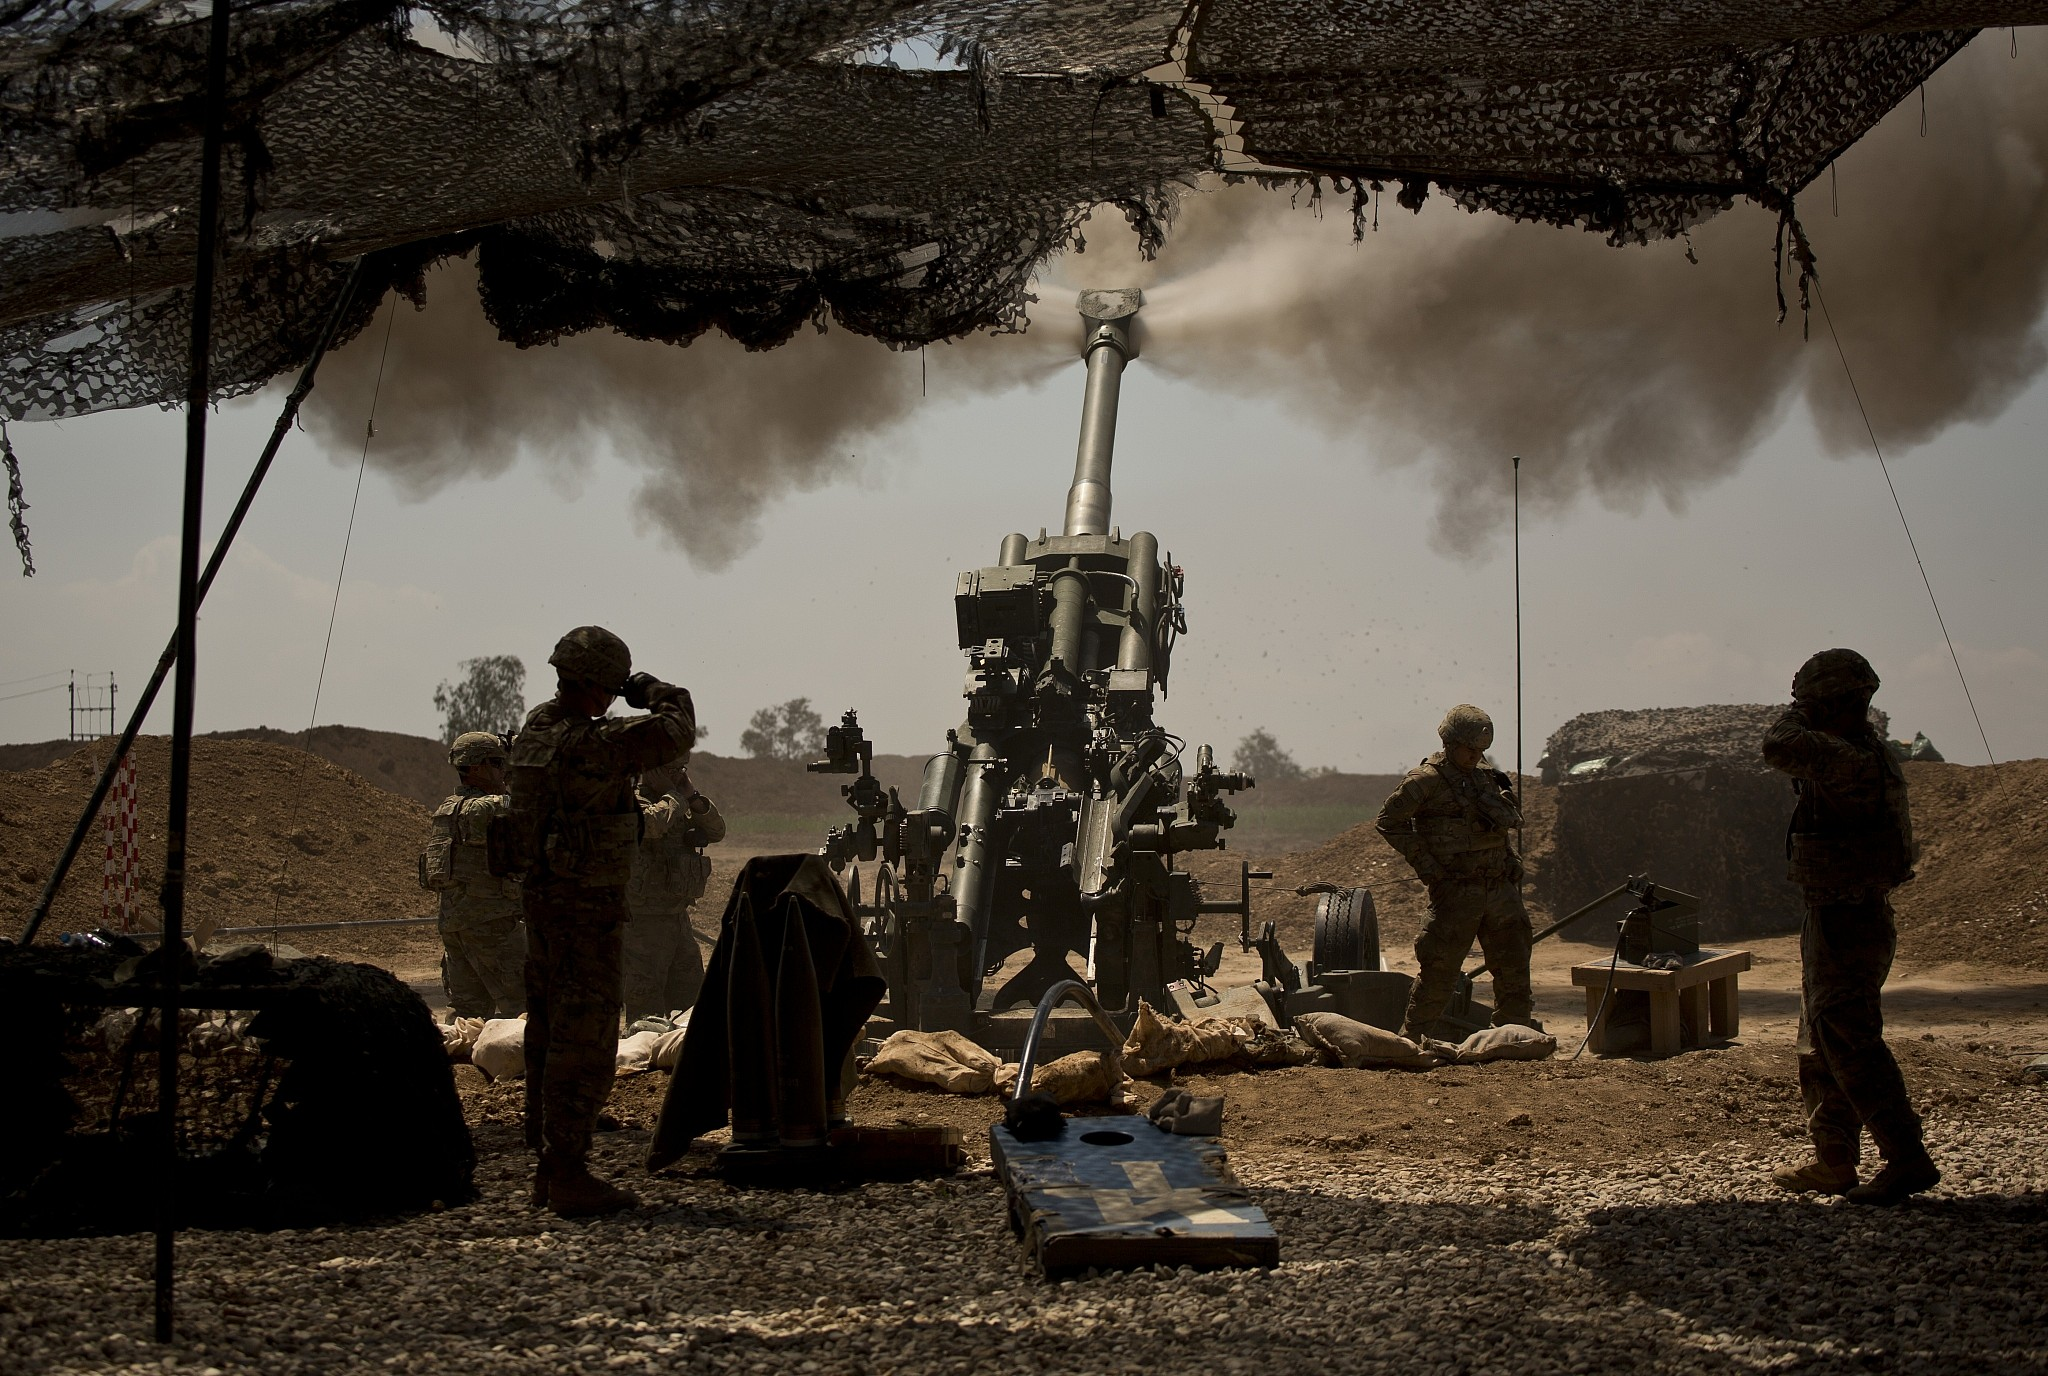 Large U.S. troop pullout planned in Afghanistan, officials say